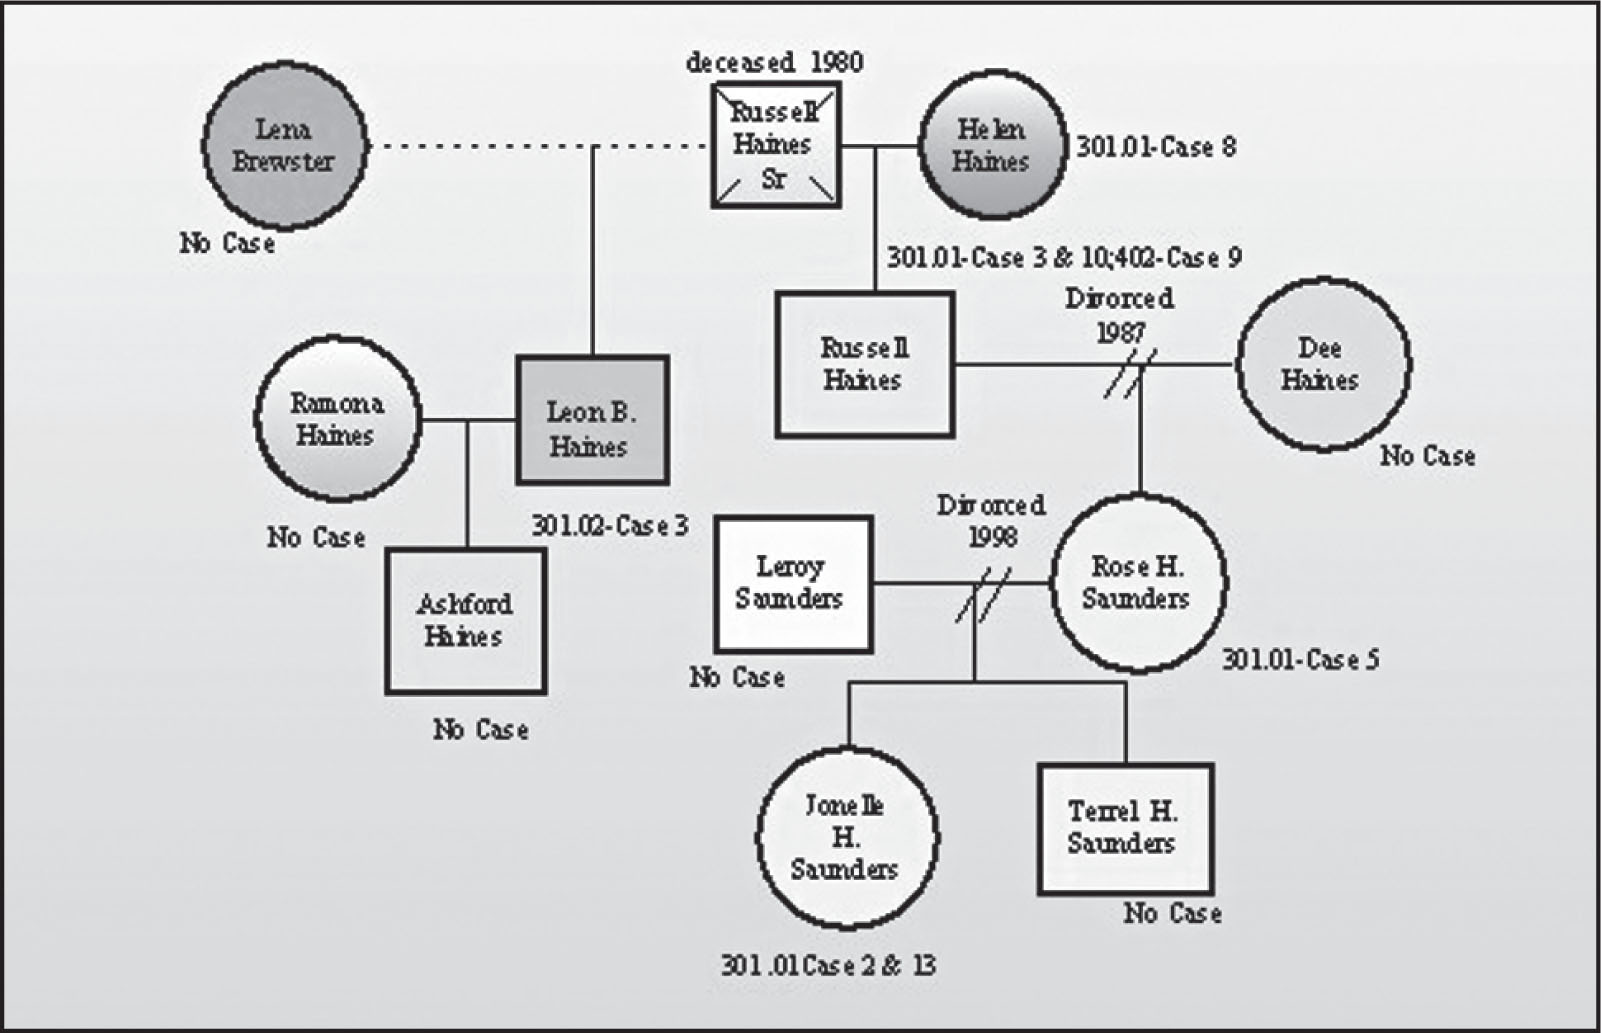 genogram summary A genogram/family tree is a method of showing relationships between people using a drawing why do we create genogram/family trees change is a difficult within a family system.